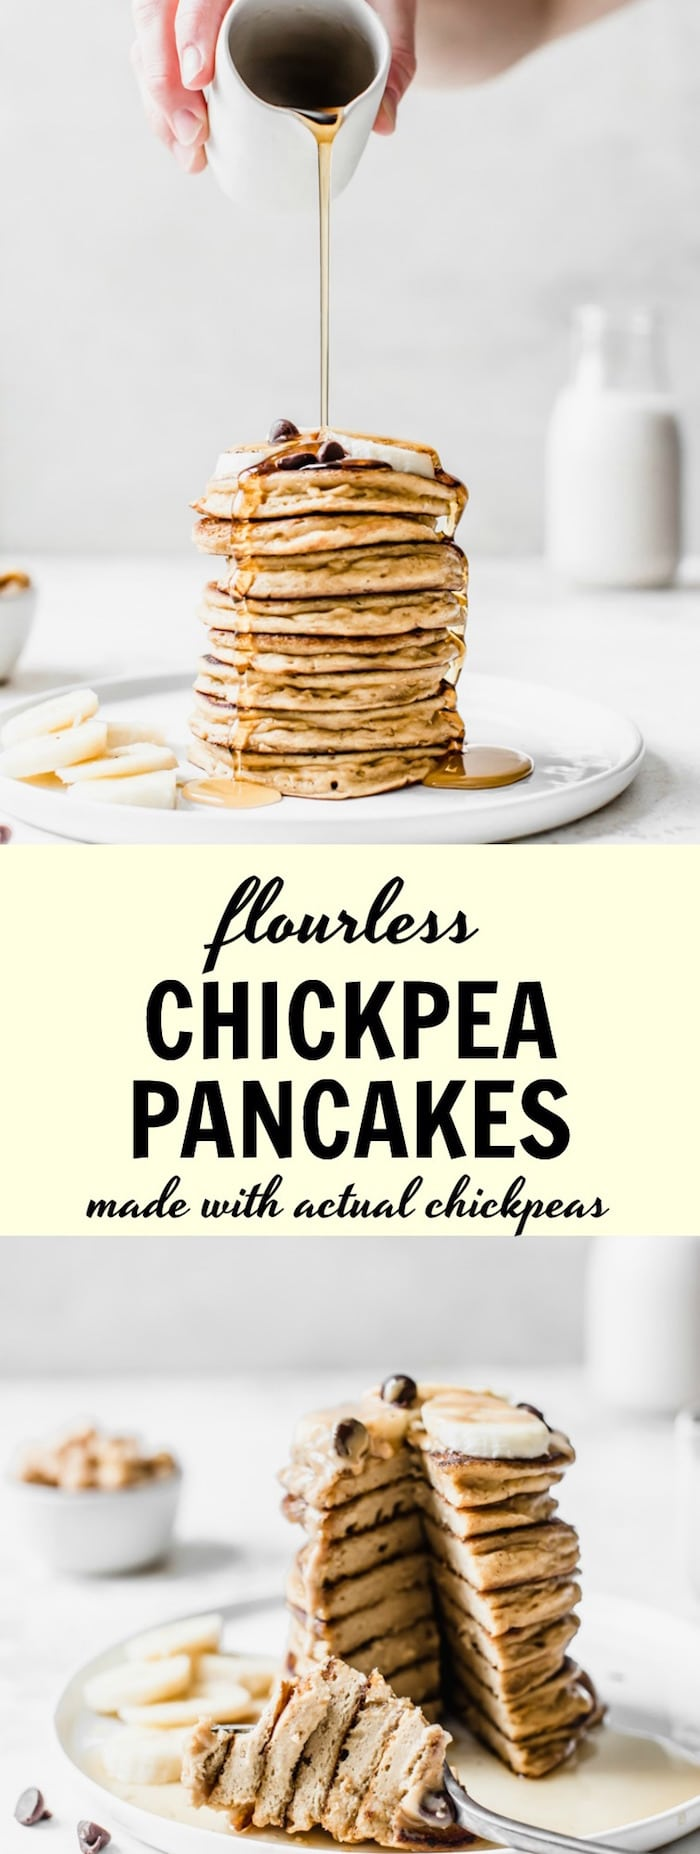 Flourless Chickpea Pancakes made with actual chickpeas for an easy, protein-packed breakfast | thealmondeater.com